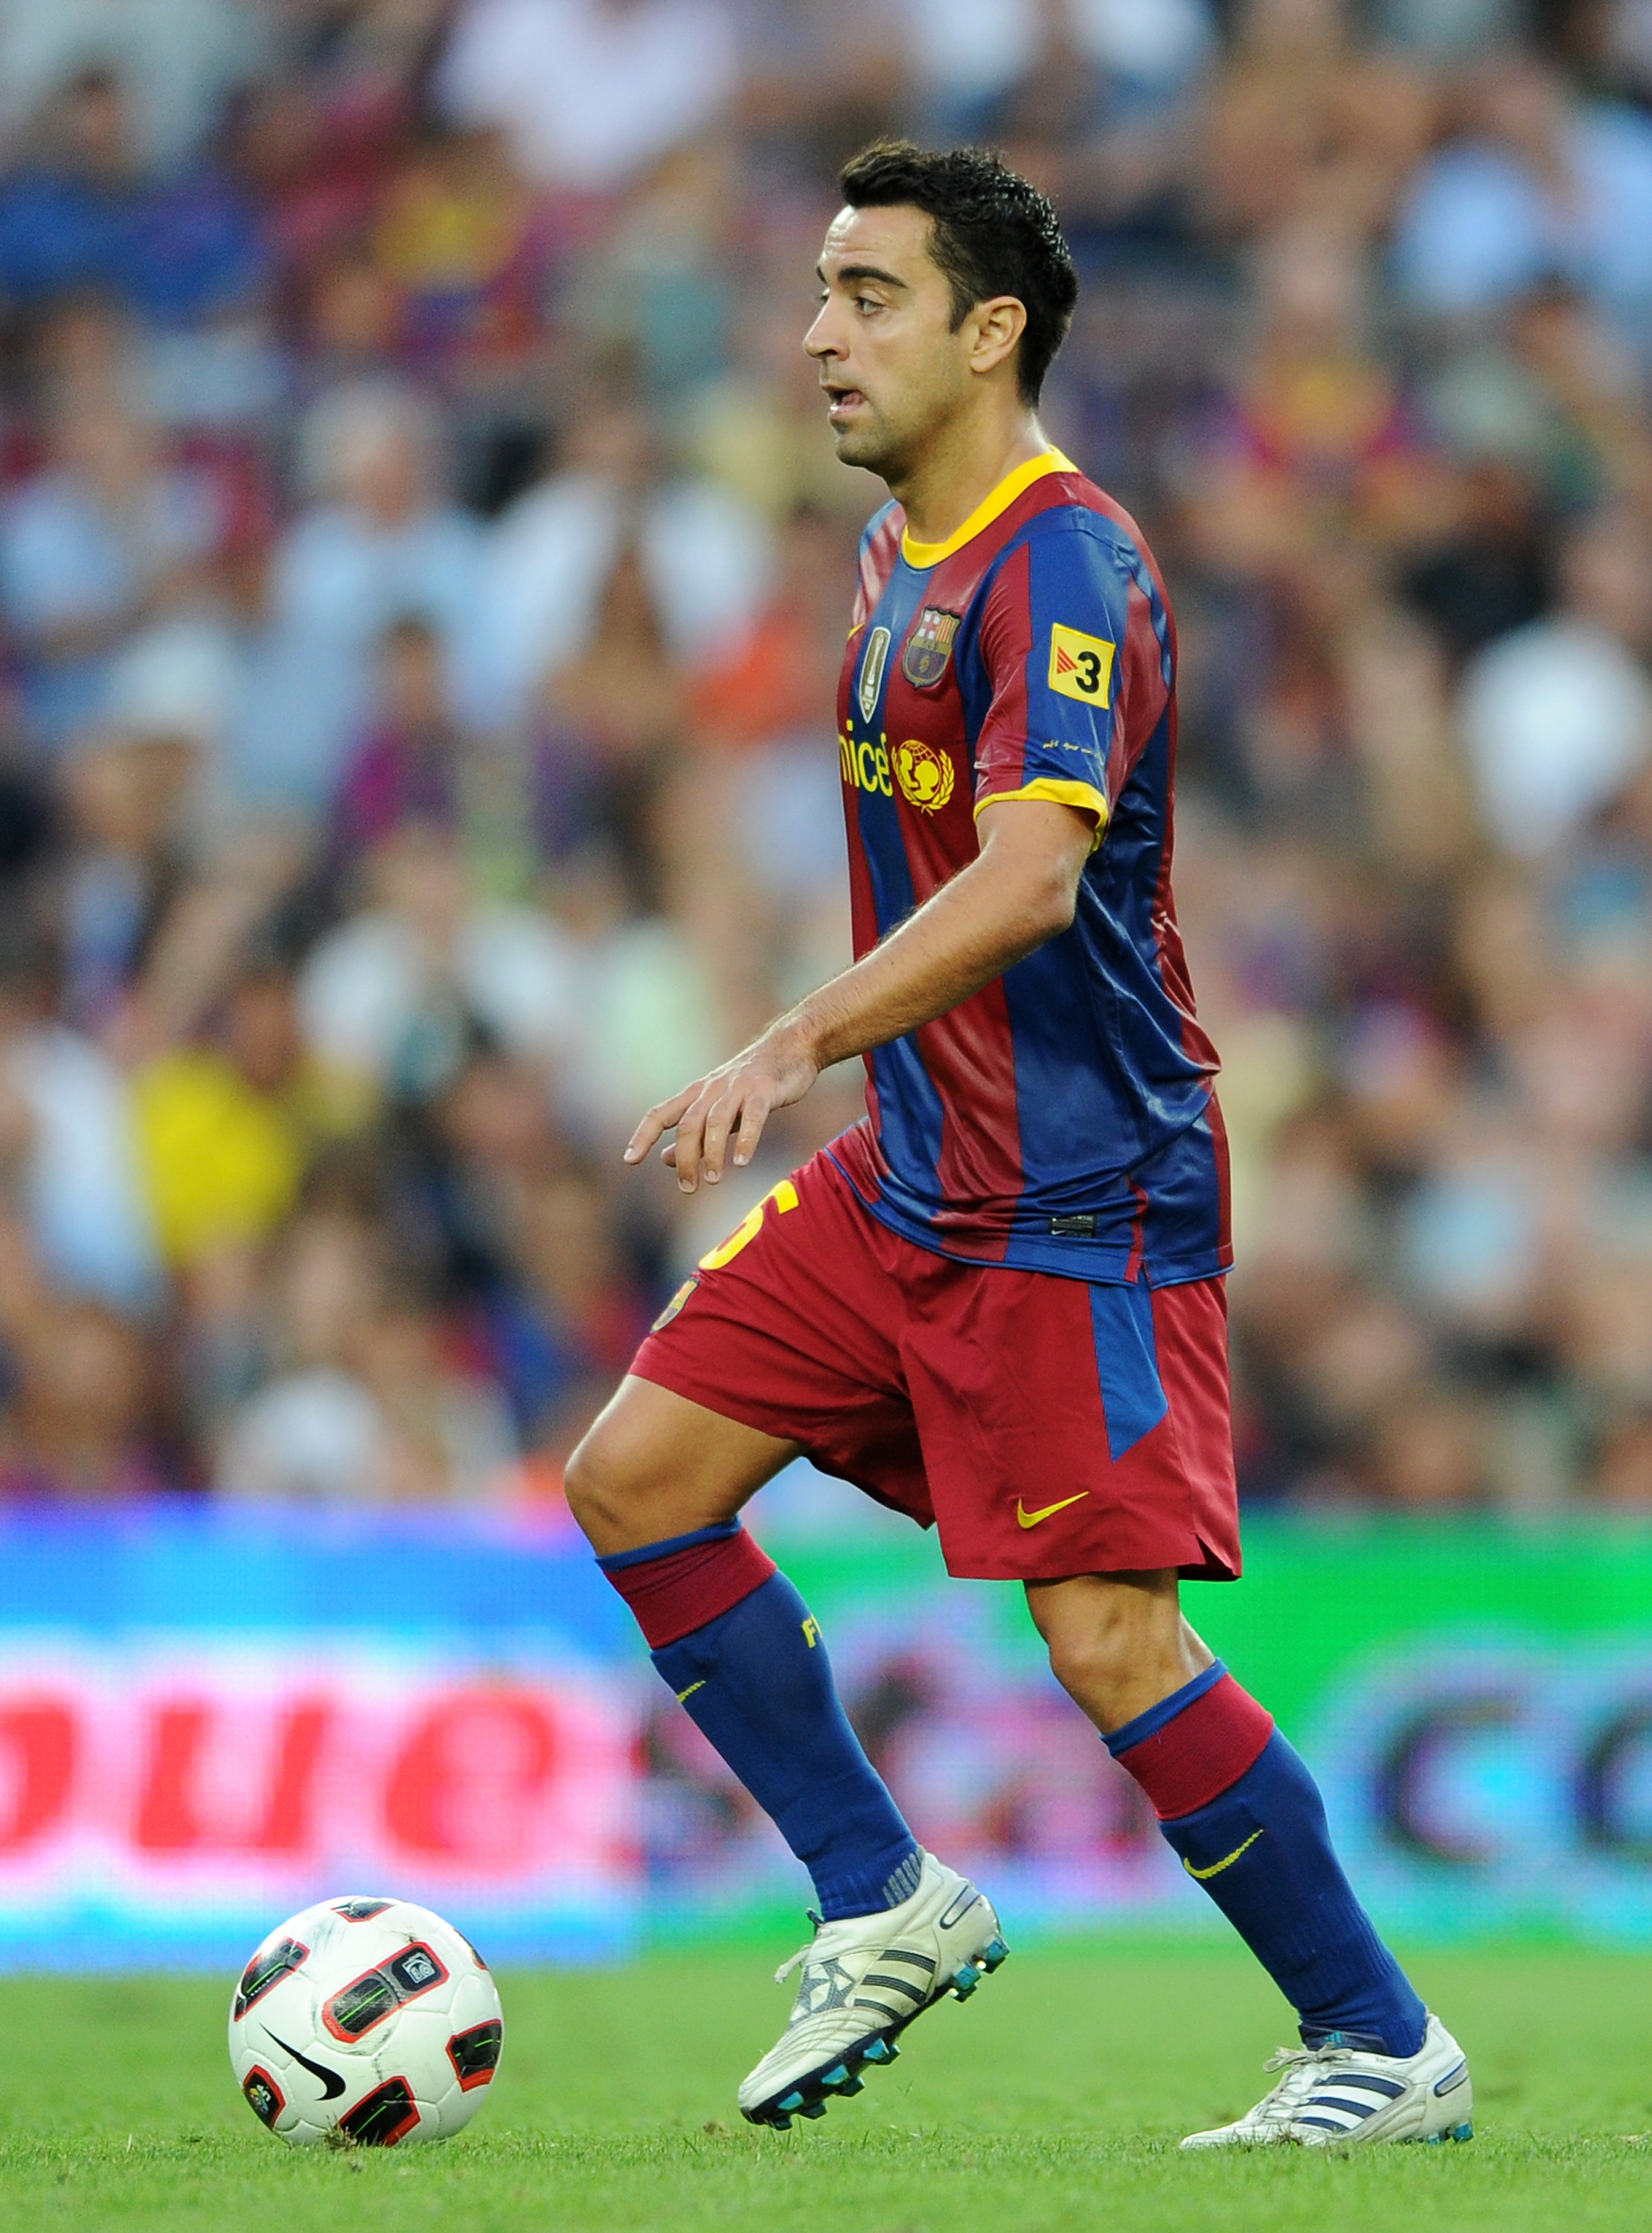 BARCELONA, SPAIN - SEPTEMBER 11:  Xavier Hernandez of Barcelona controls the ball during the La Liga match between Barcelona and Hercules at the Camp Nou stadium on September 11, 2010 in Barcelona, Spain. Barcelona lost the match 2-0.  (Photo by Jasper Ju